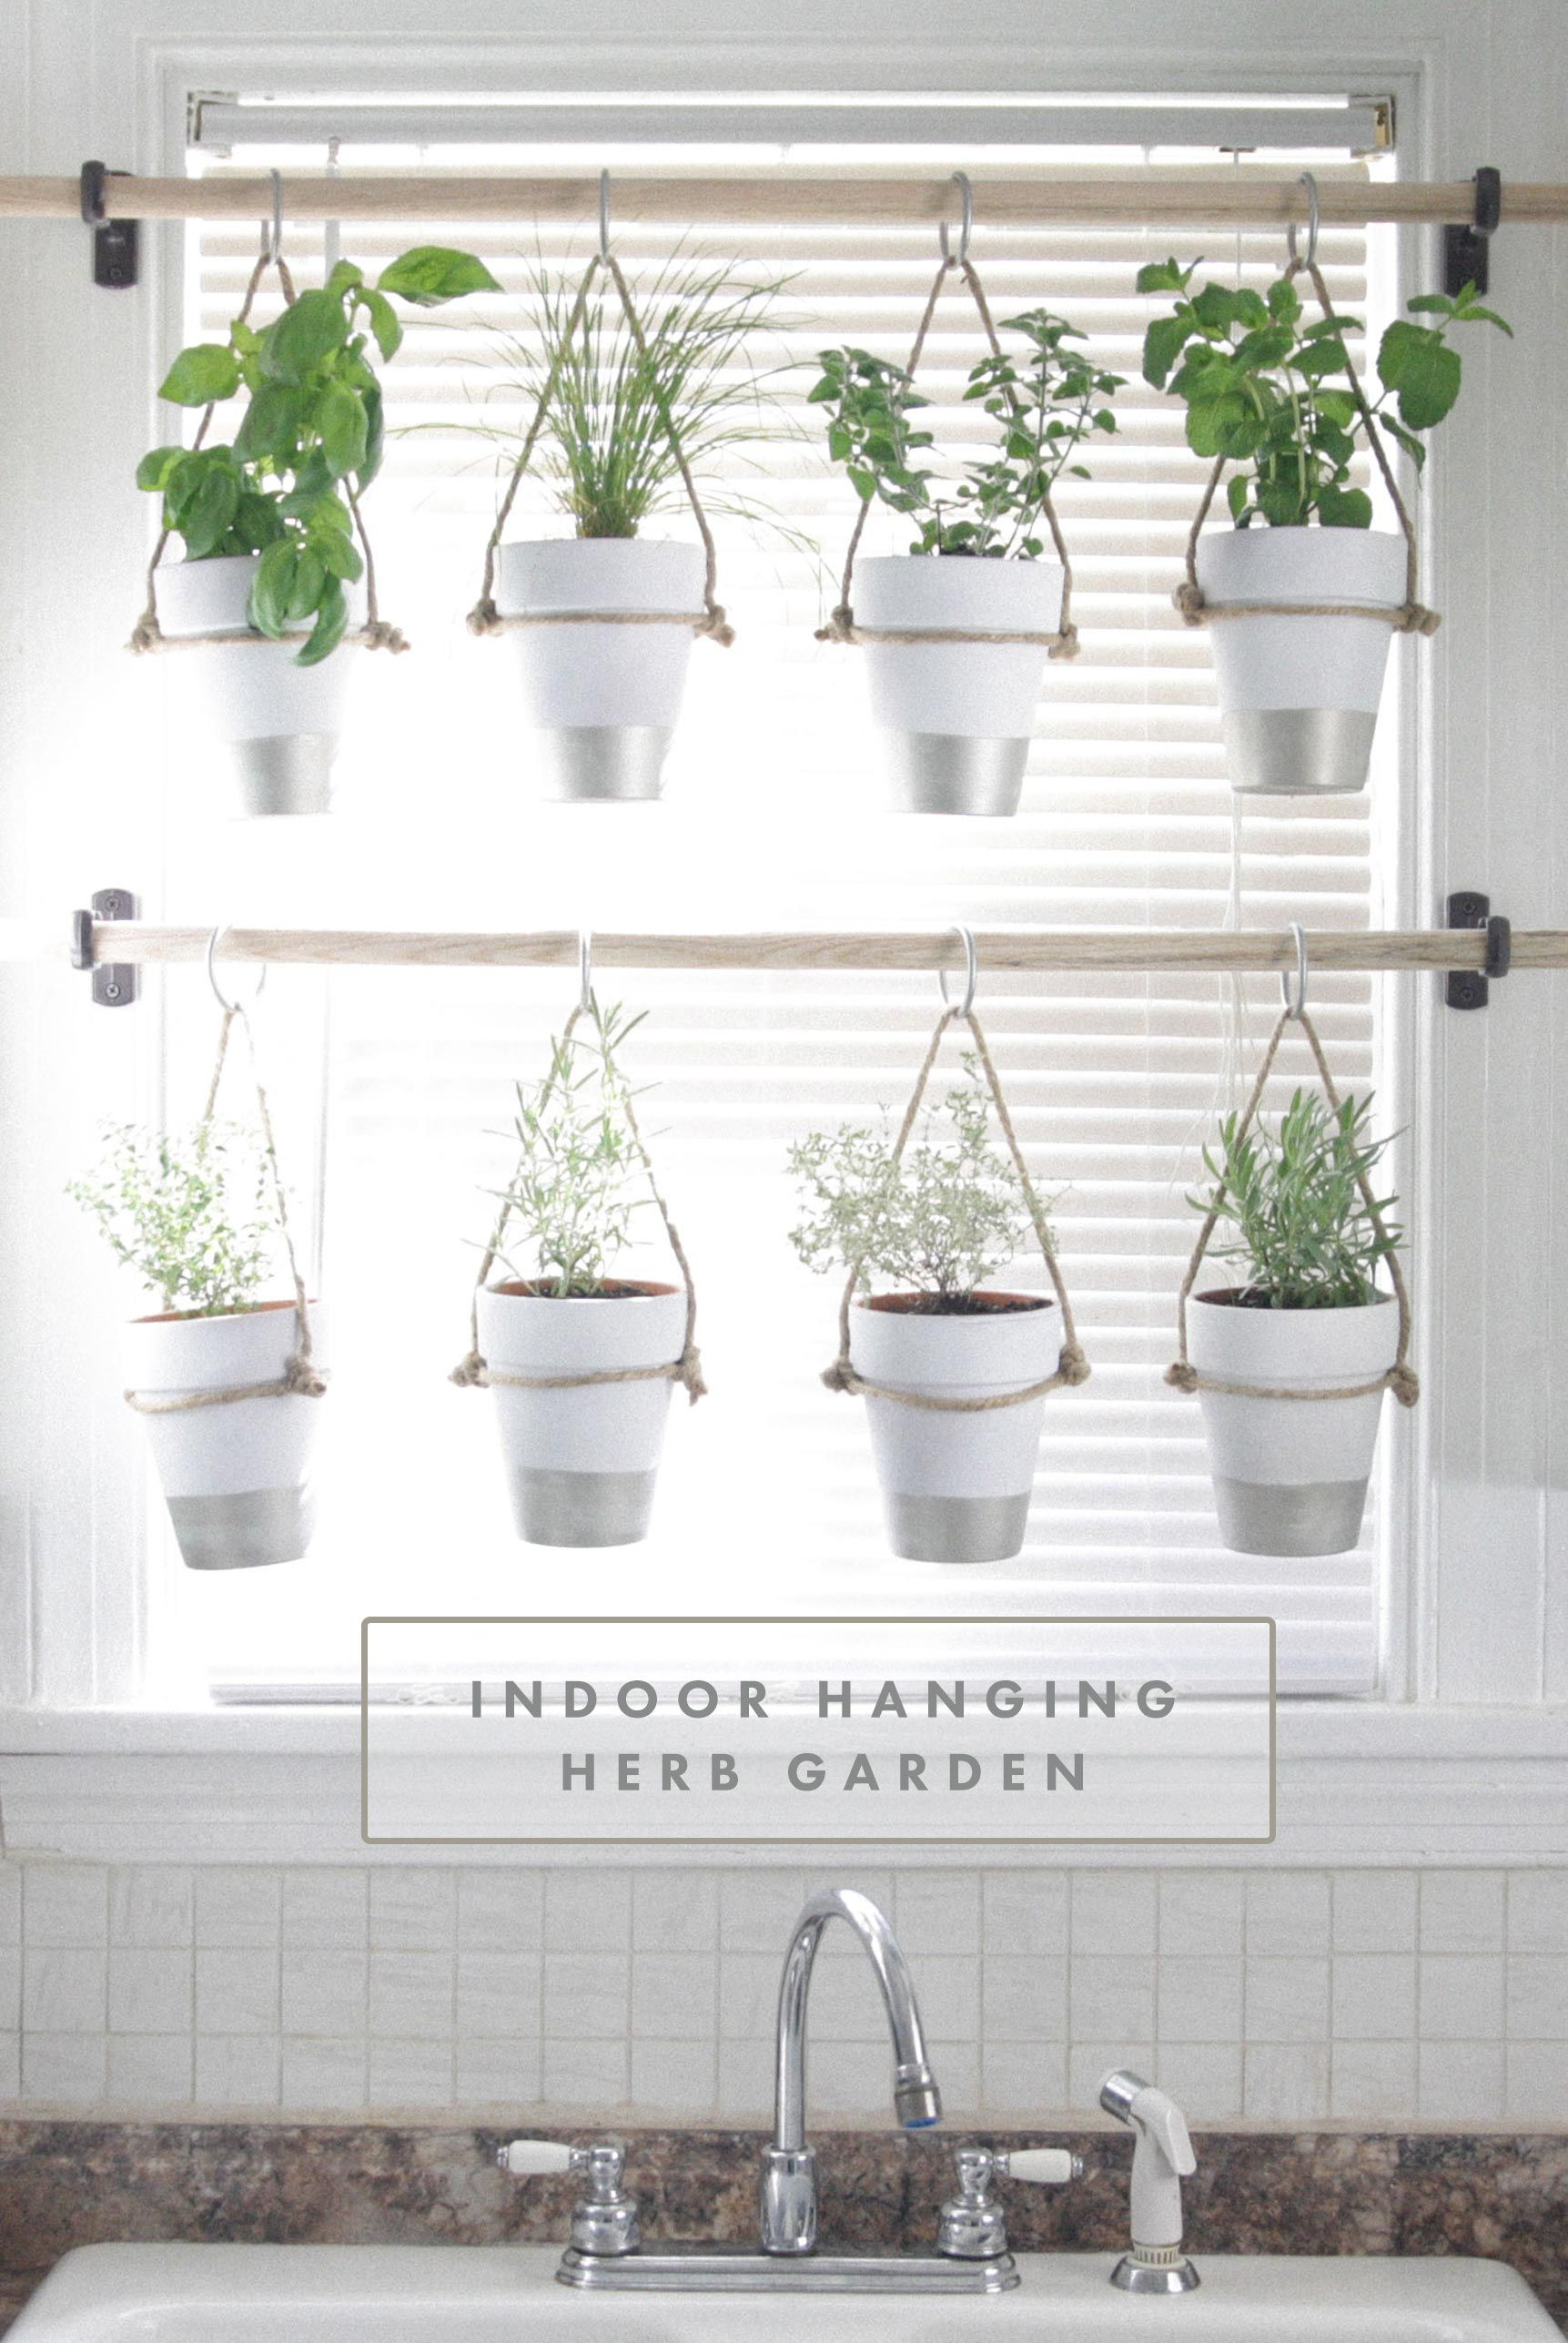 Indoor Kitchen Garden Stove Hoods Transform Hanging Glass Jars Into An Herb Farm 3960c988a06ed1515eb1a194506b6293 Jpg